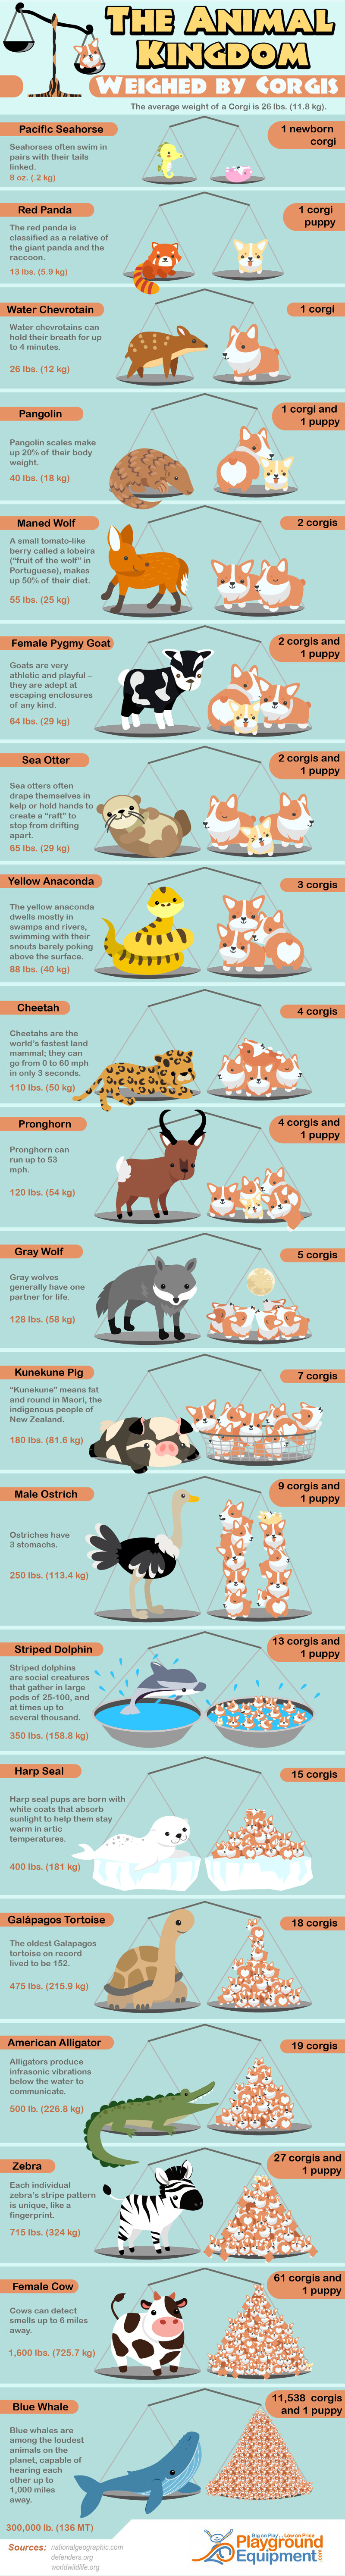 The Animal Kingdom Weighed by Corgis - PlaygroundEquipment.com - Infographic